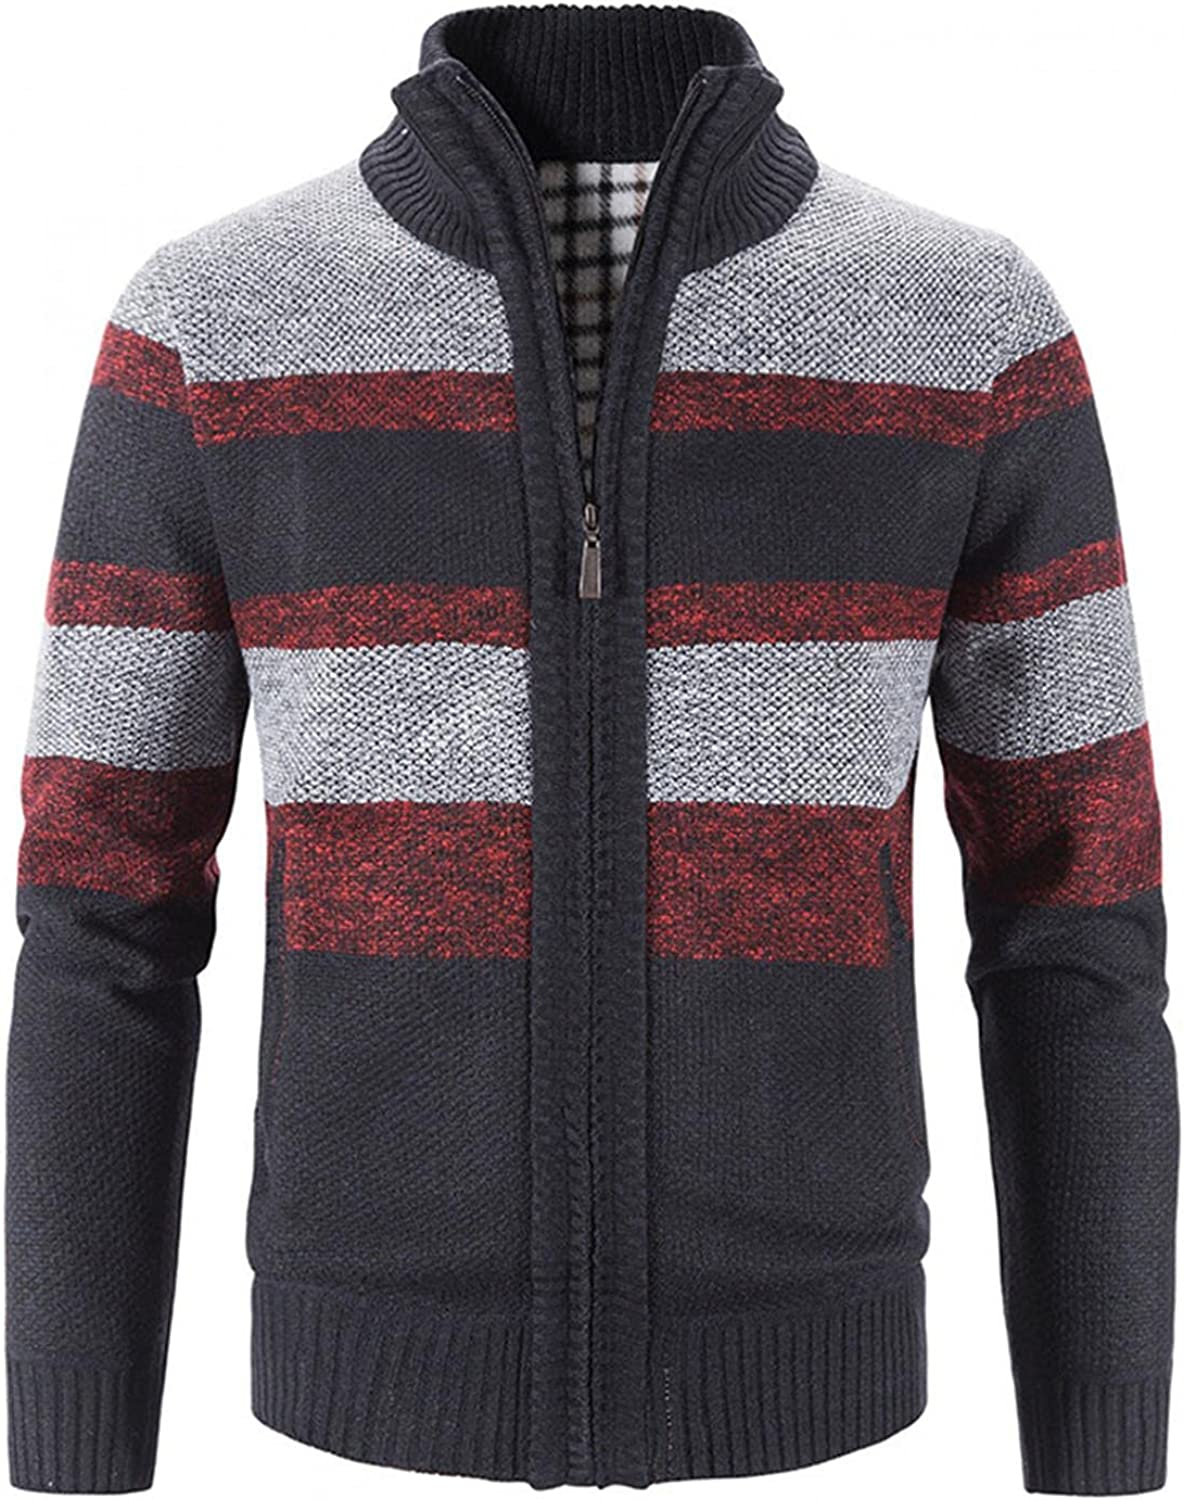 LEIYAN Mens Cable Knit Cardigan Casual Zip Up Long Sleeve Graphic Colorblock Thermal Jacket Knitwear